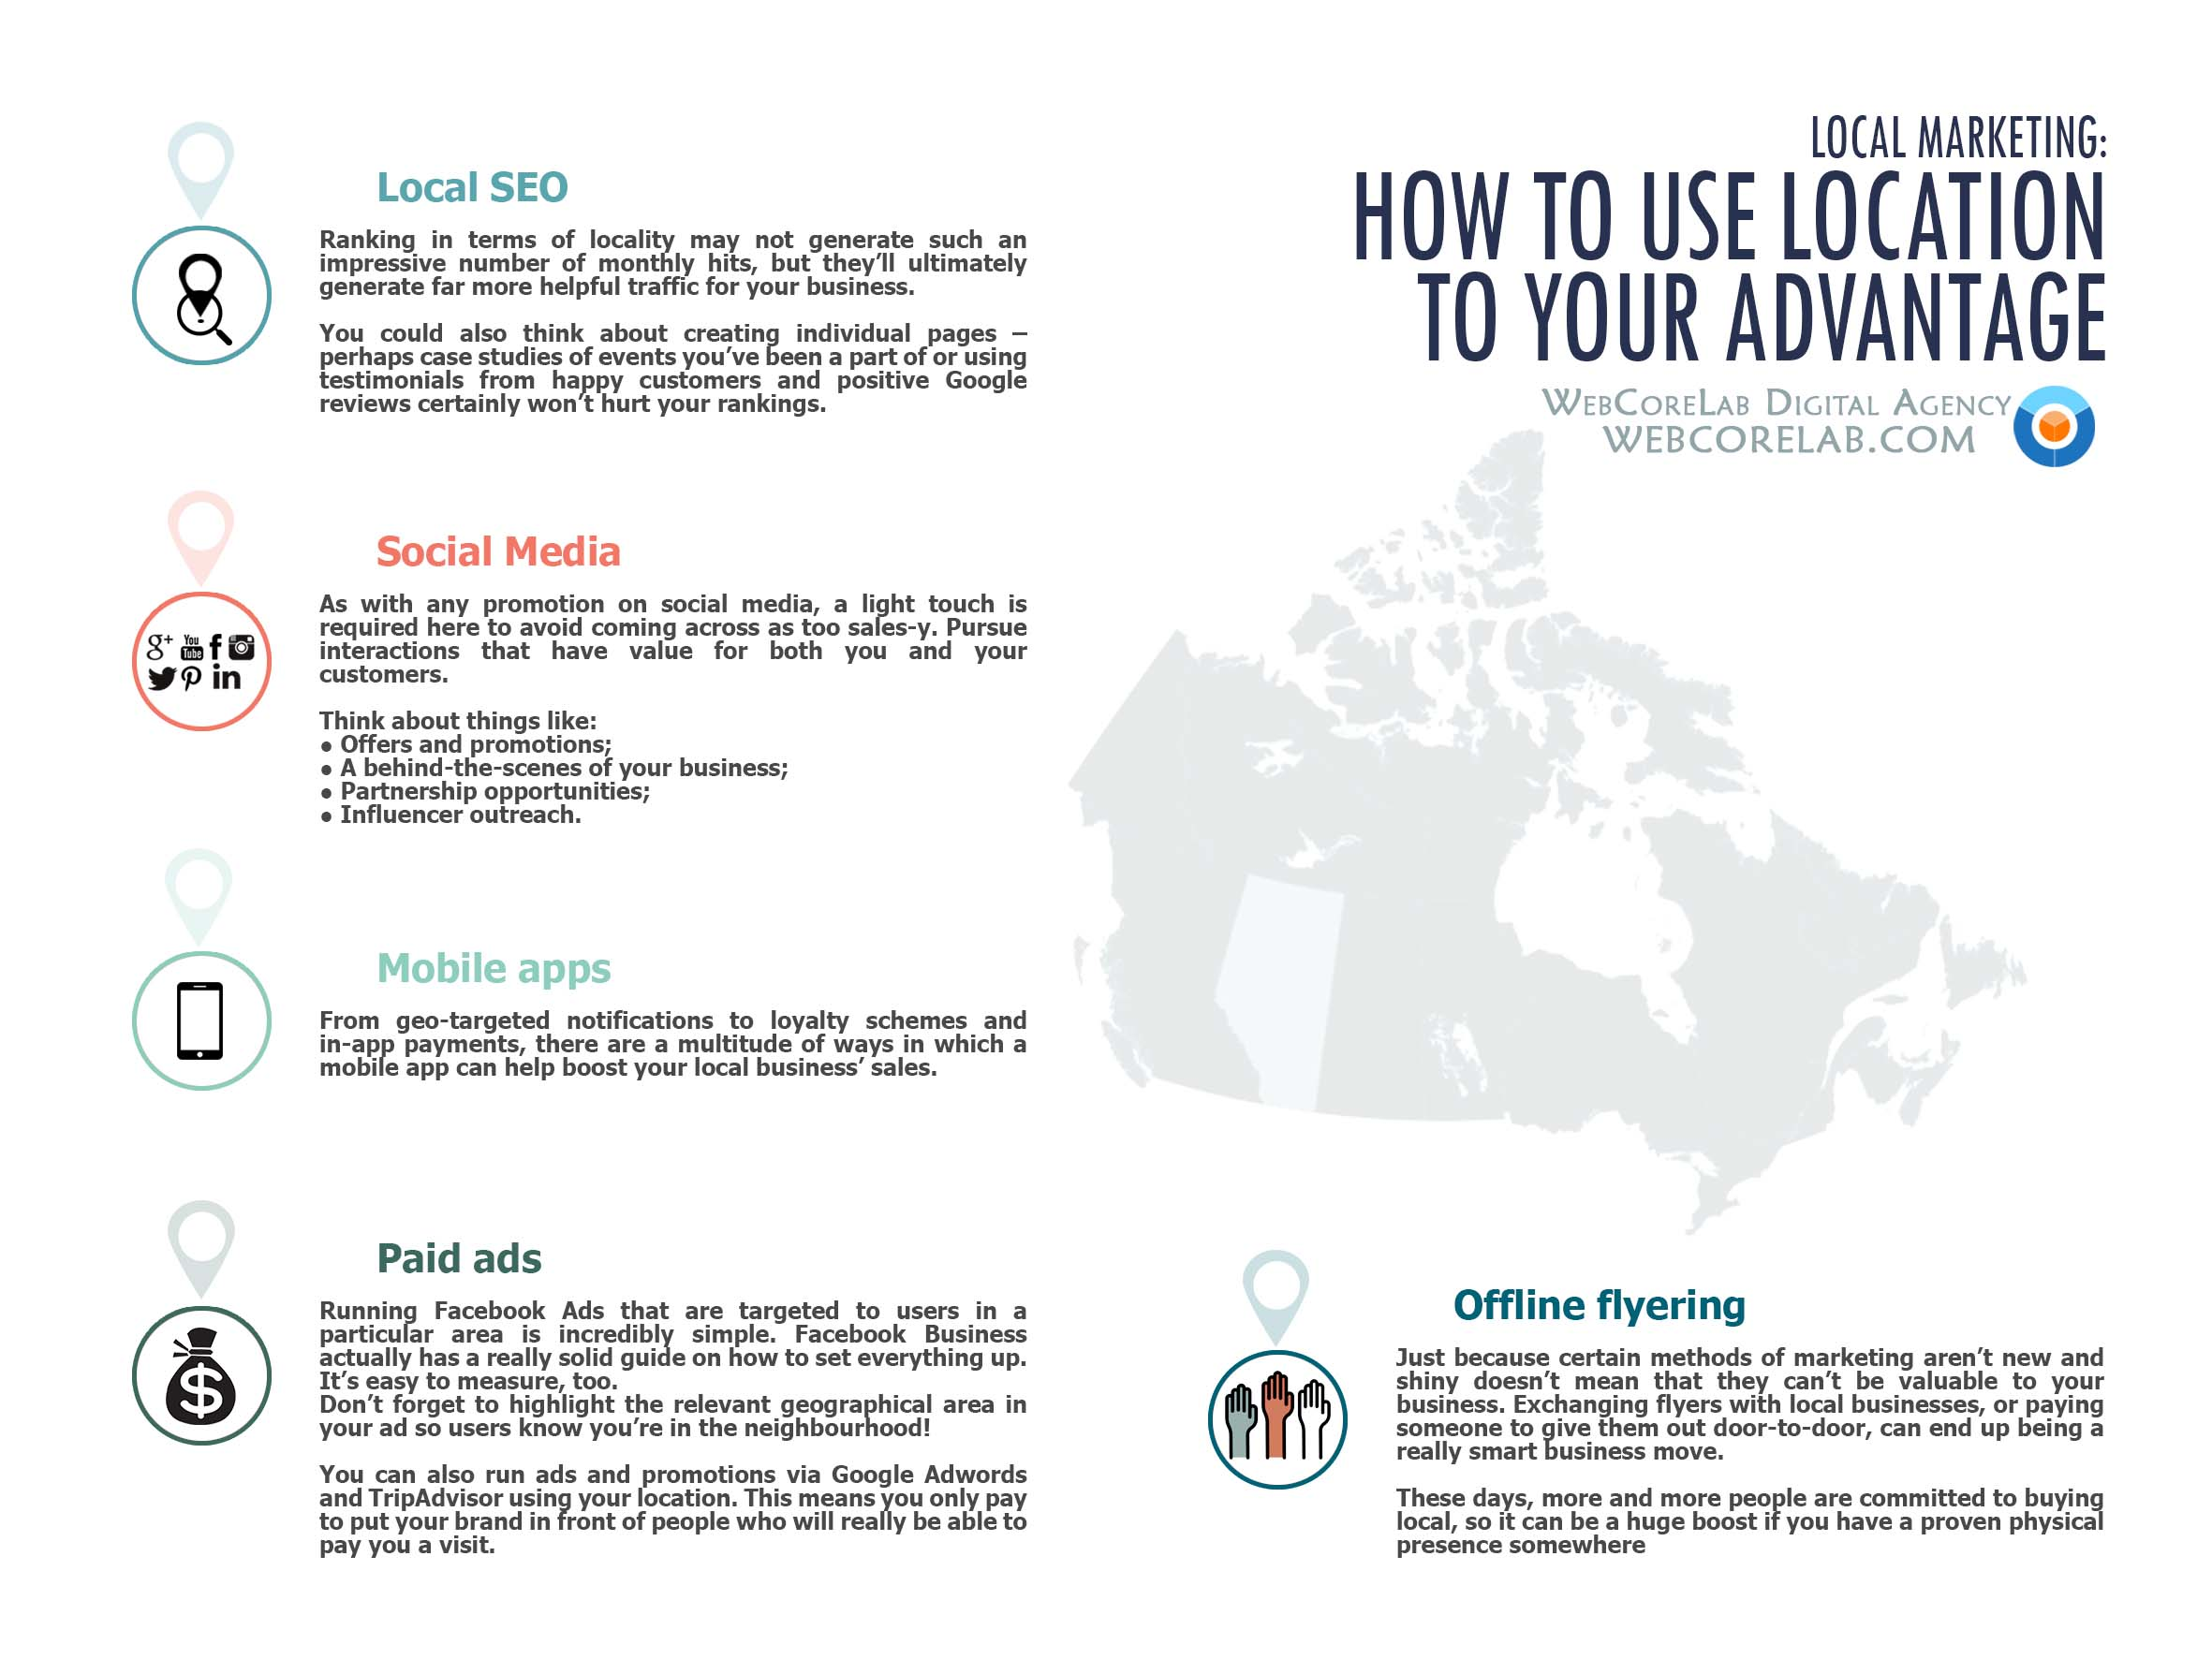 A guide to local marketing from Webcorelab digital agency